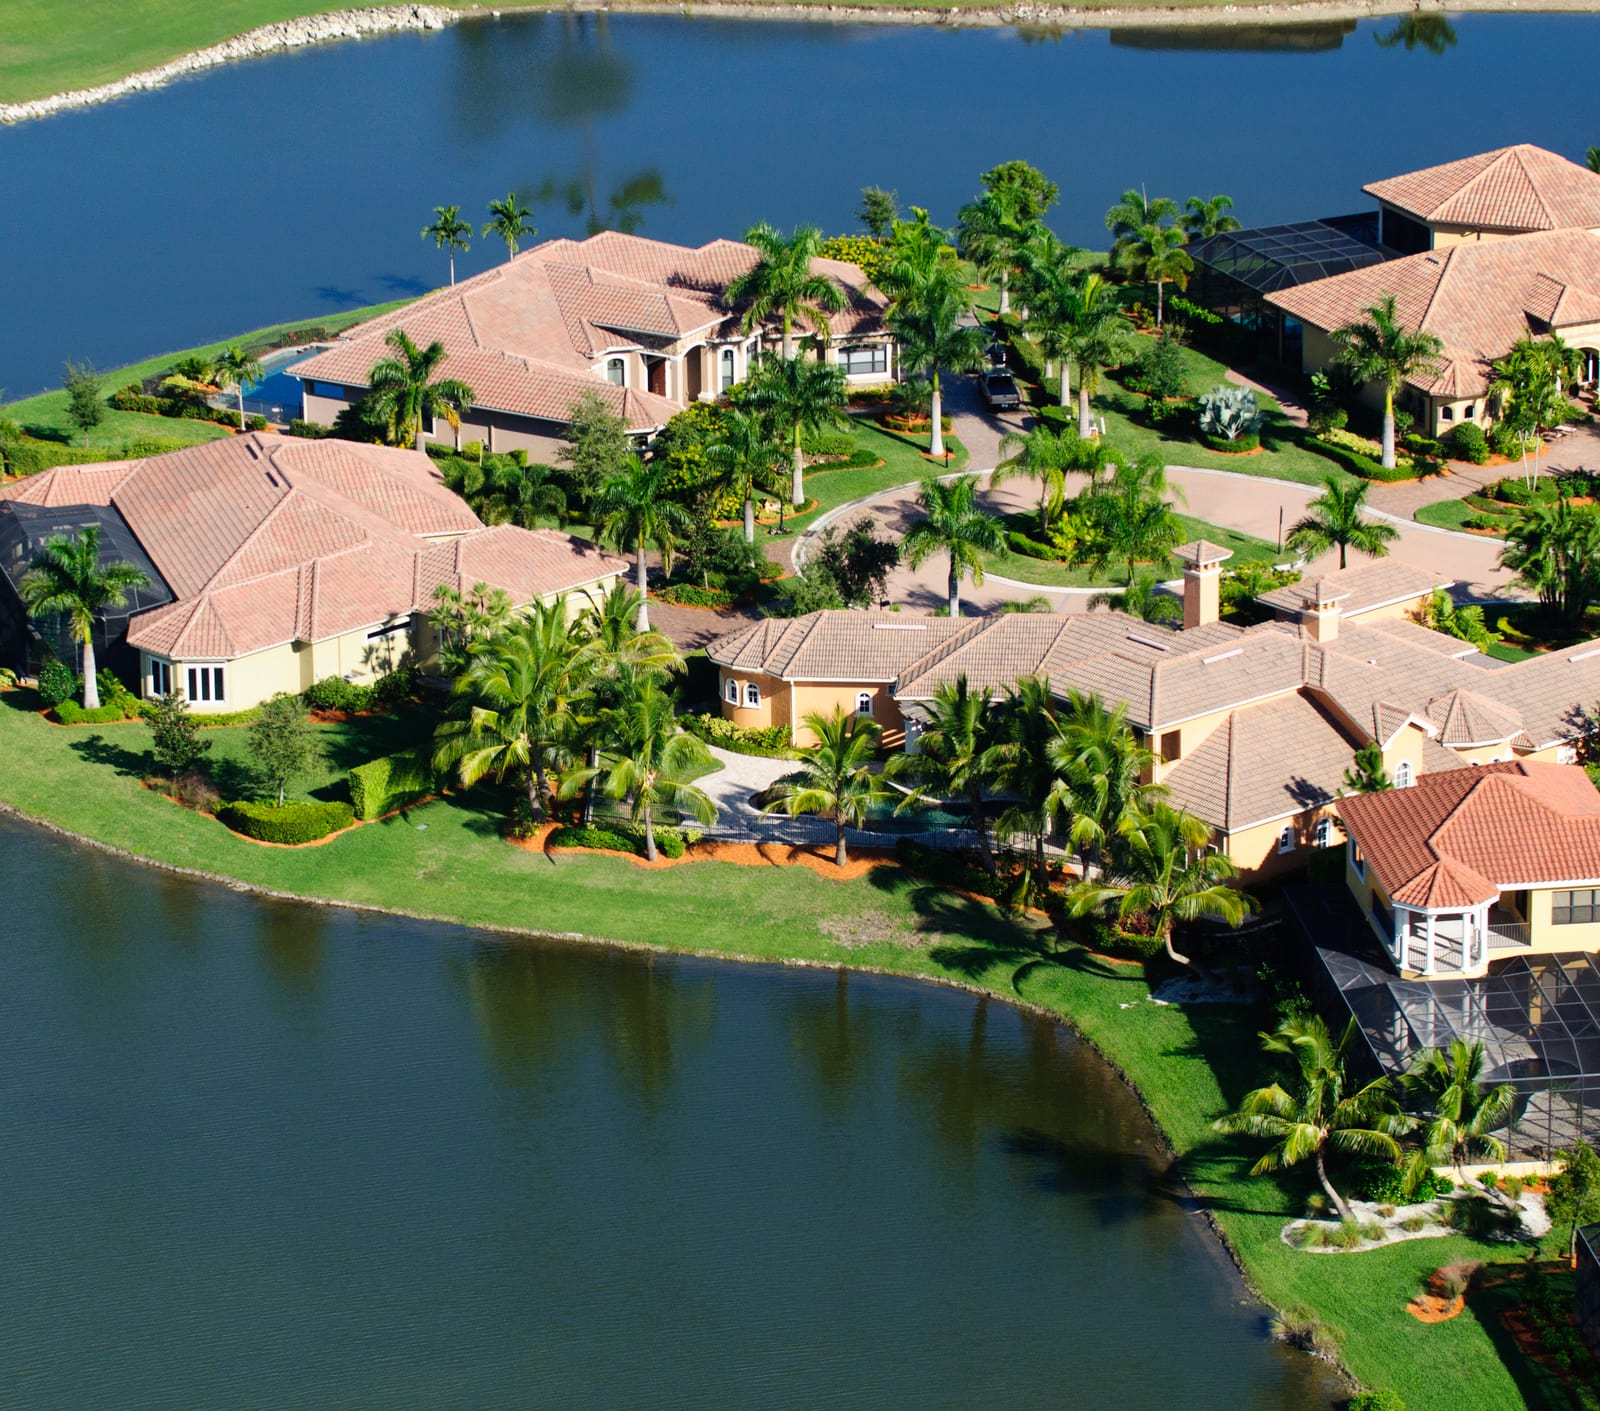 Who Has the Most Affordable Mortgages in Florida? - ValuePenguin